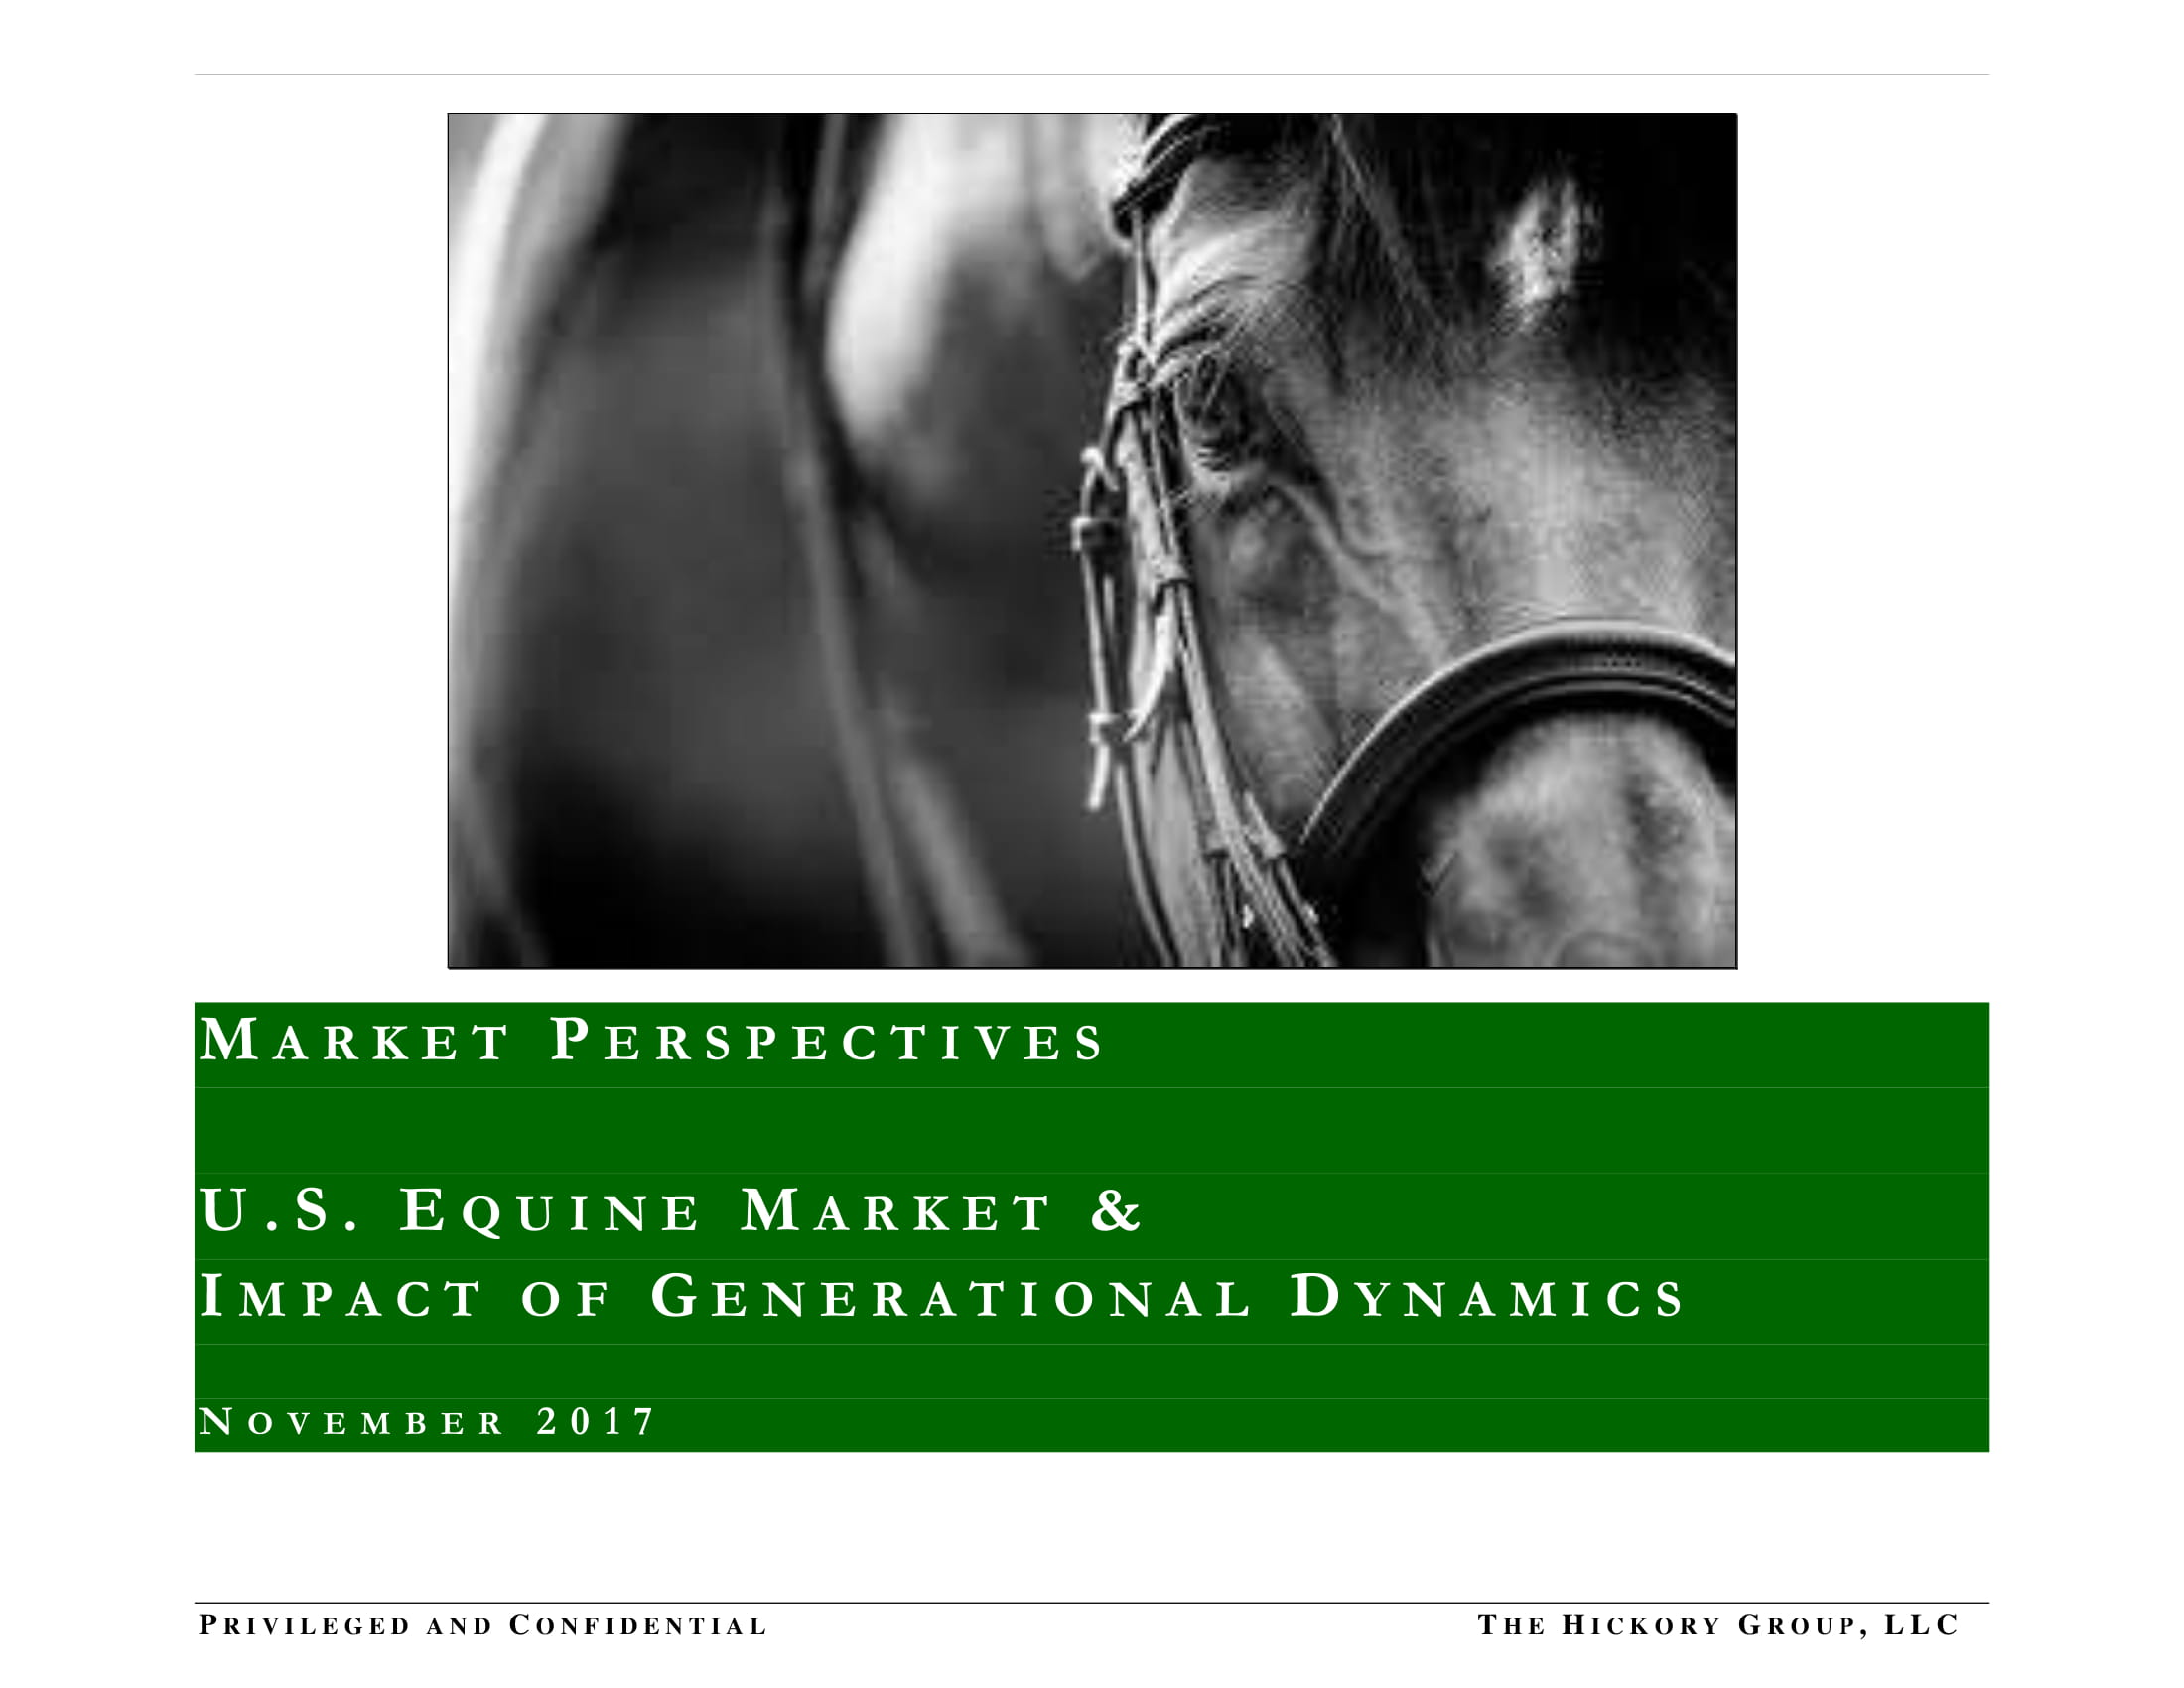 PUBLIC FINAL _Millennials and Equine Market Summary (15 November 2017) Privileged and Confidential-01.jpg